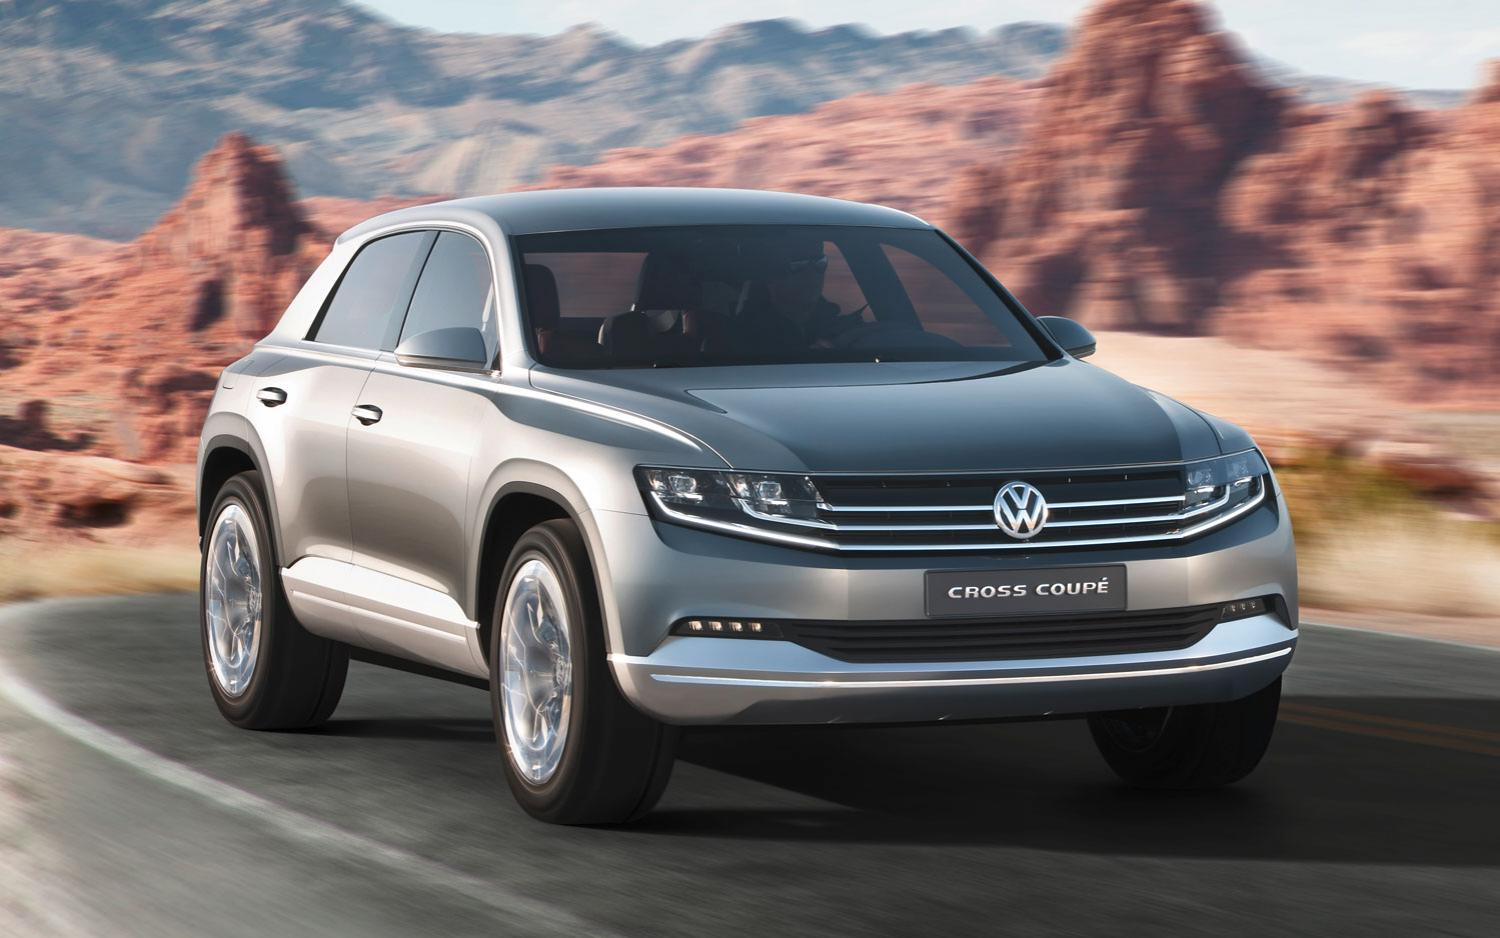 Новинки от Volkswagen: Tiguan Coupe и Arteon Shooting Brake